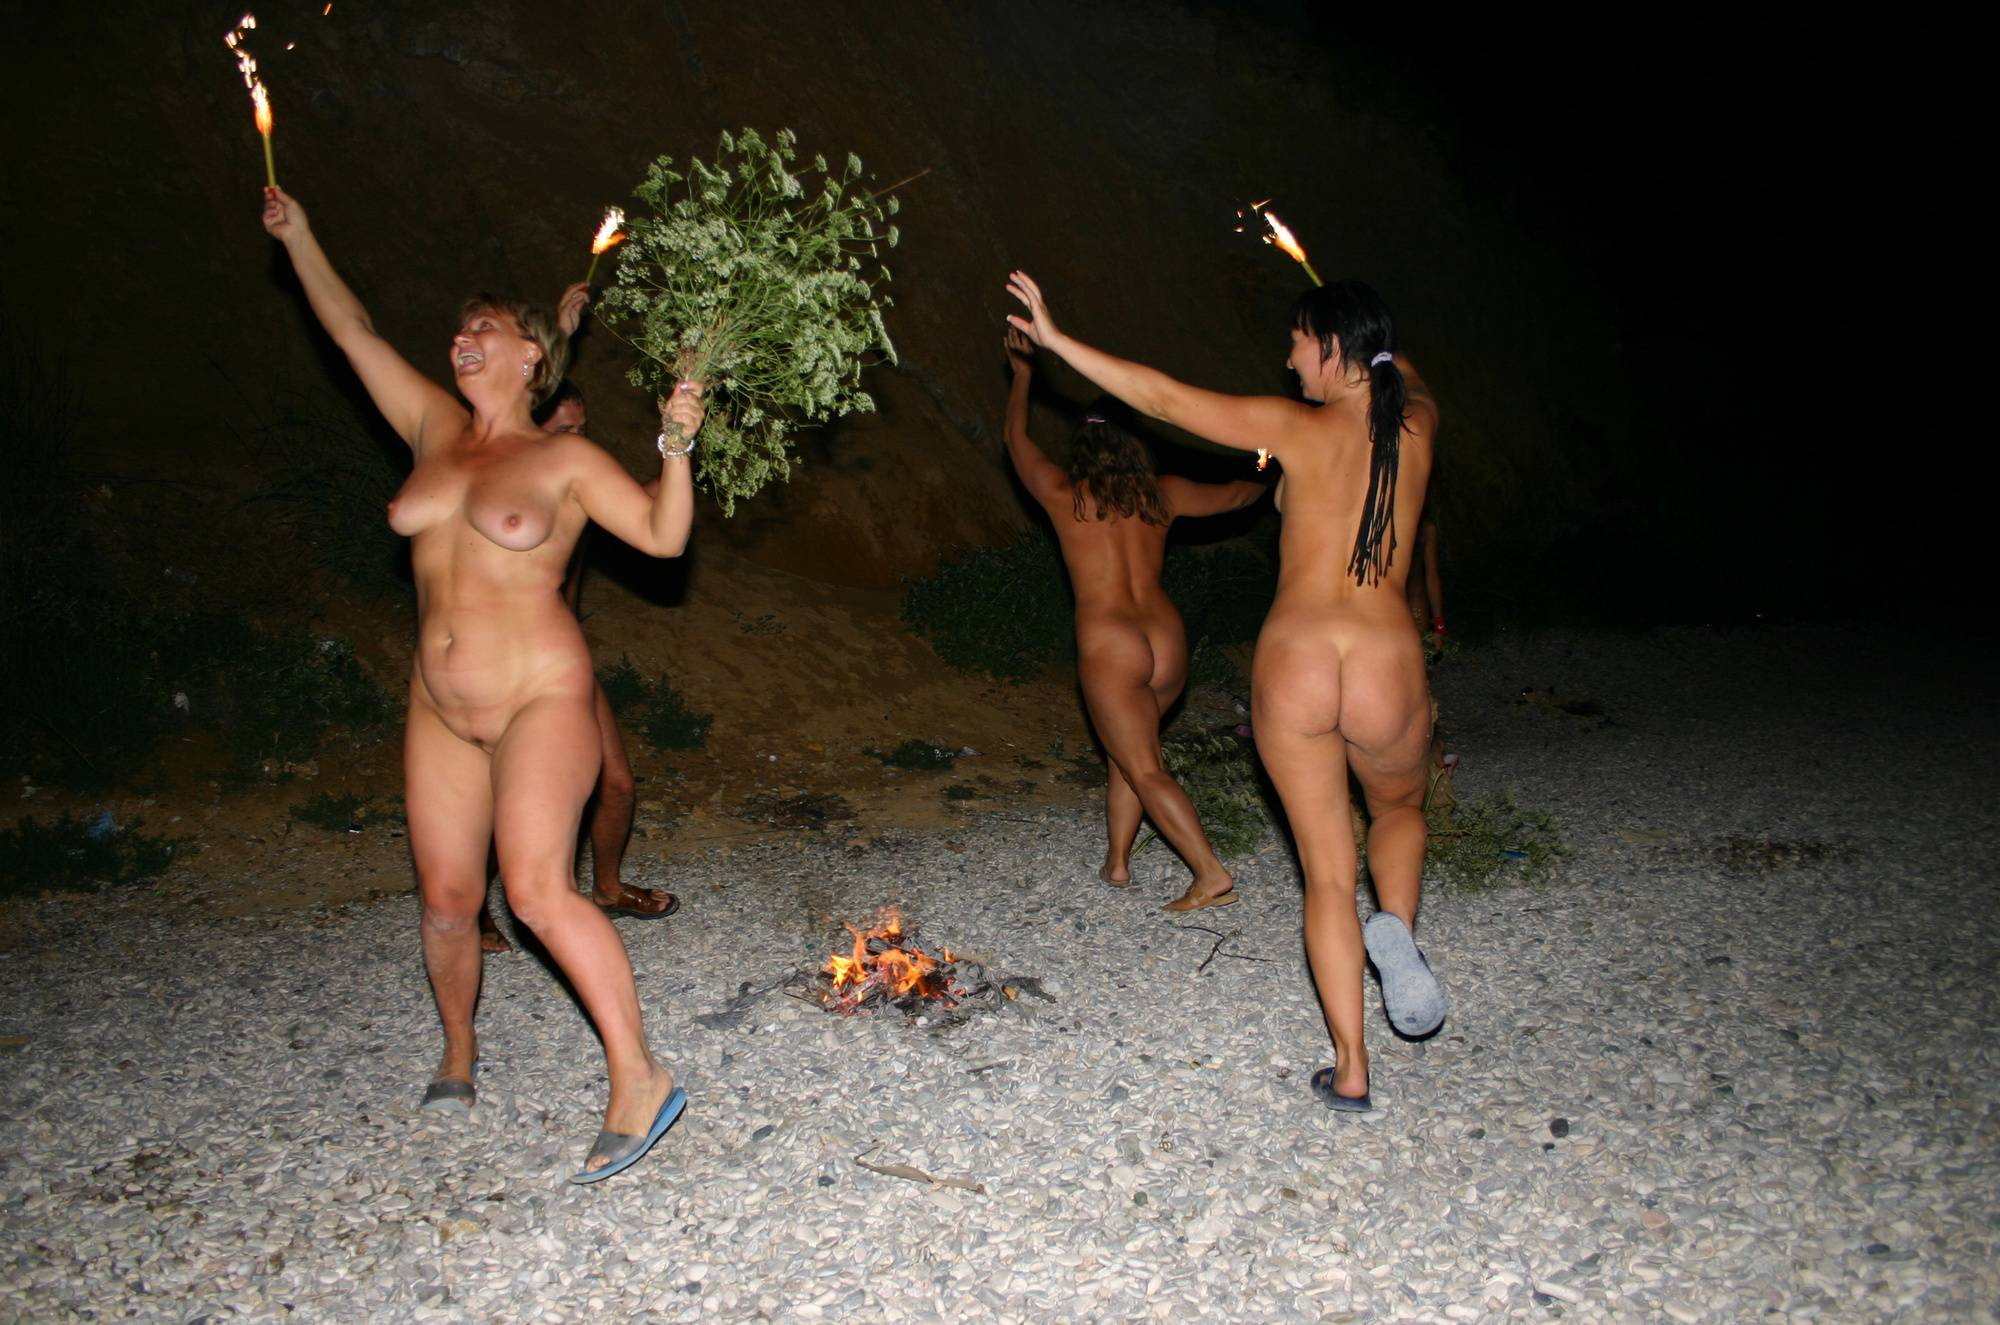 Nudist Pics Fire and Bow Night Dancing - 2